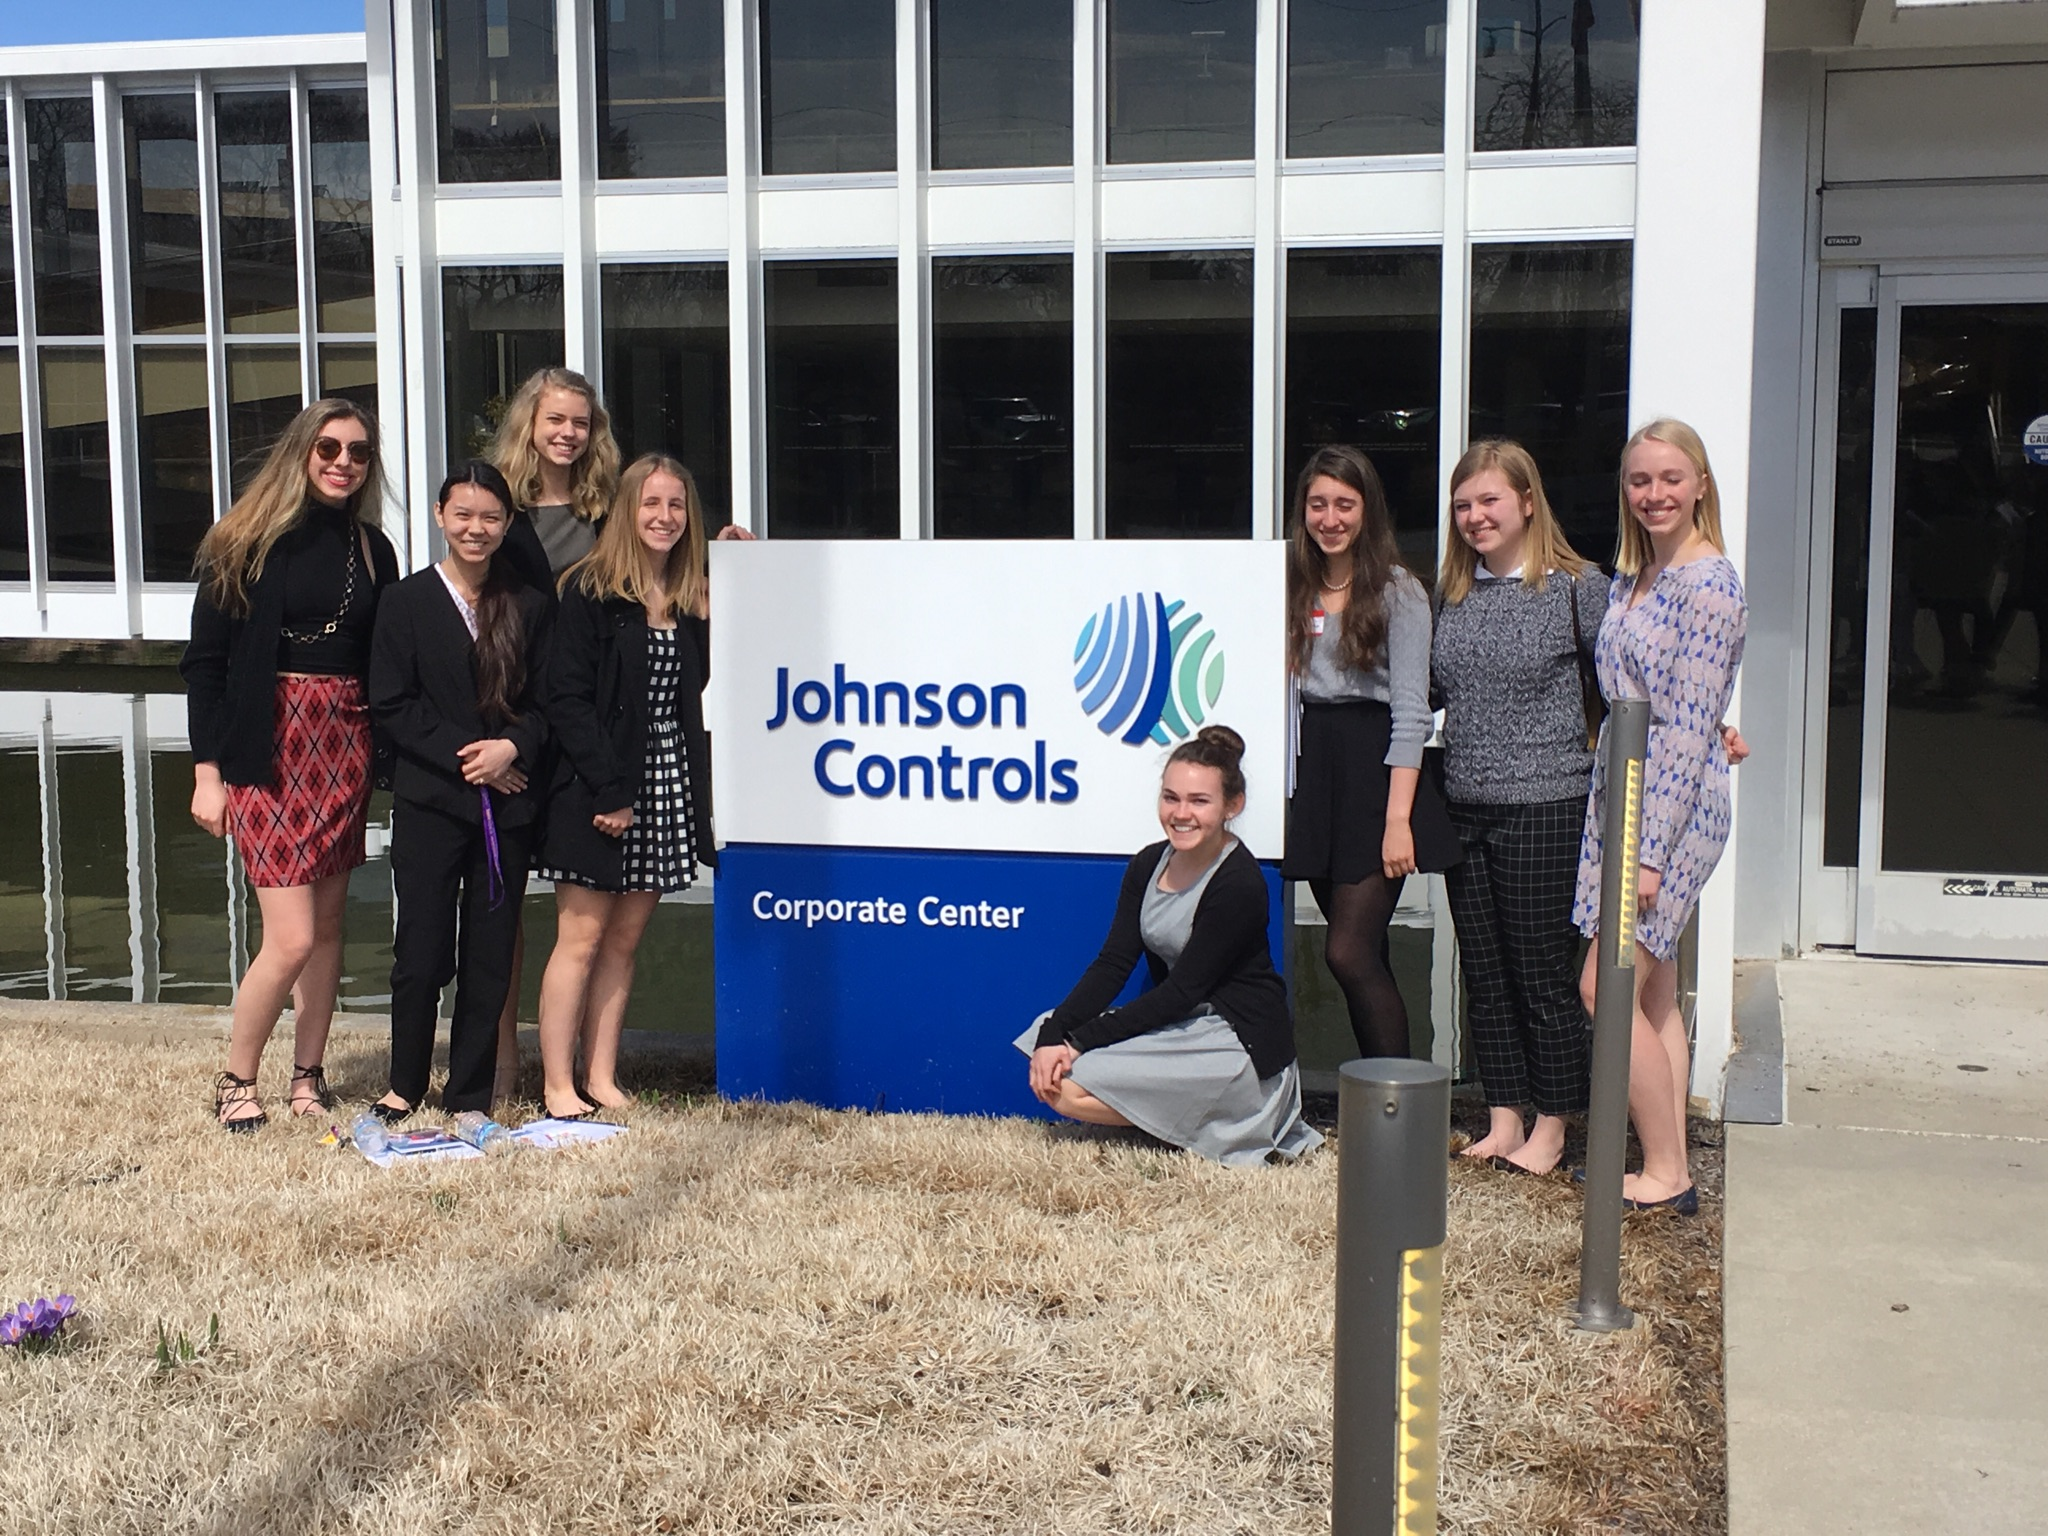 The GEMS club attended a Prep-Pro workshop at Johnson Controls to learn about STEM careers.